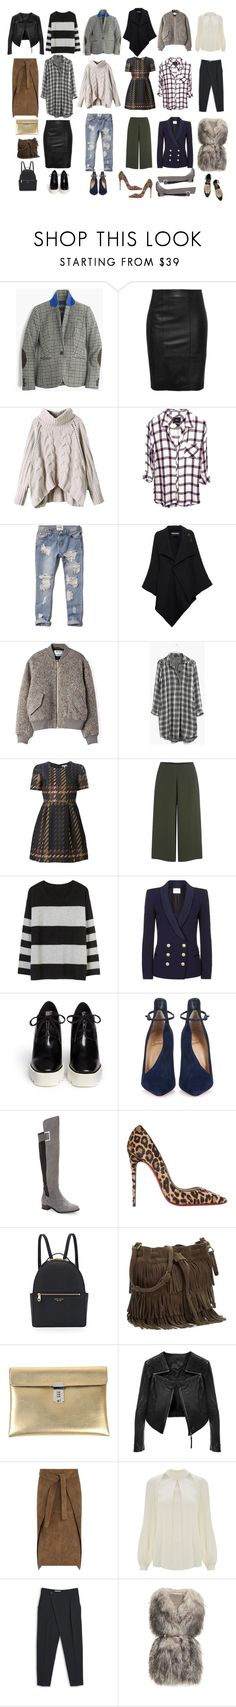 """FALL"" by stephanie-nina ❤ liked on Polyvore featuring J.Crew, Abercrombie & Fitch, Roland Mouret, Acne Studios, Madewell, P.A.R.O.S.H., Cameo, BEA, Pierre Balmain and STELLA McCARTNEY"